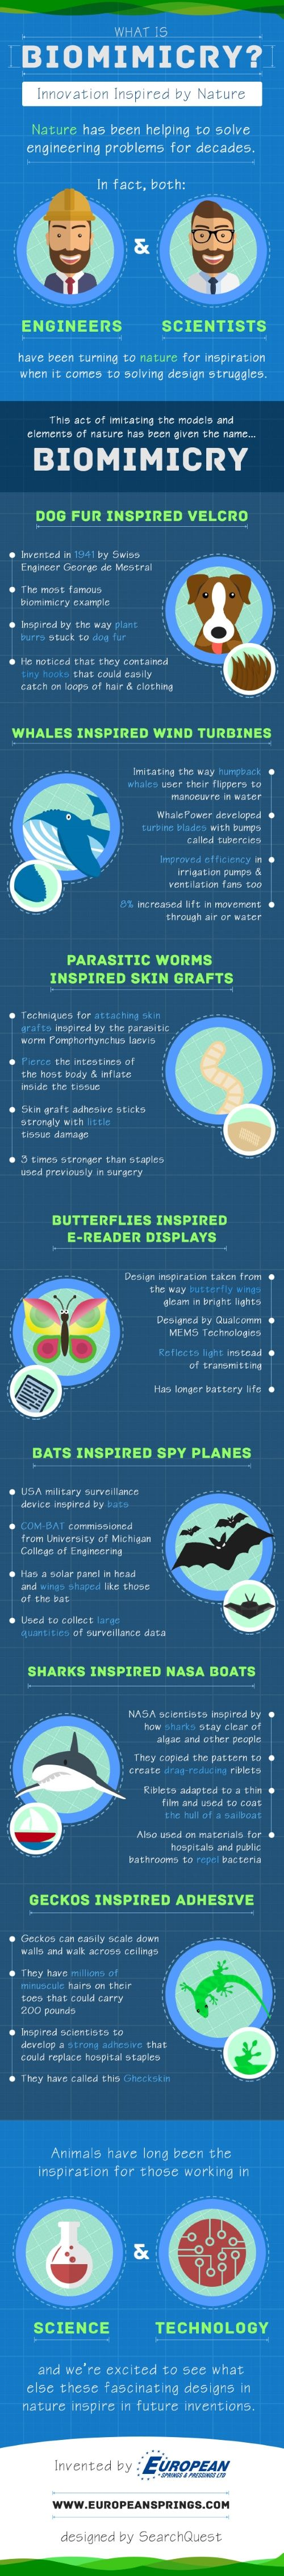 best future images on pinterest home ideas good ideas and